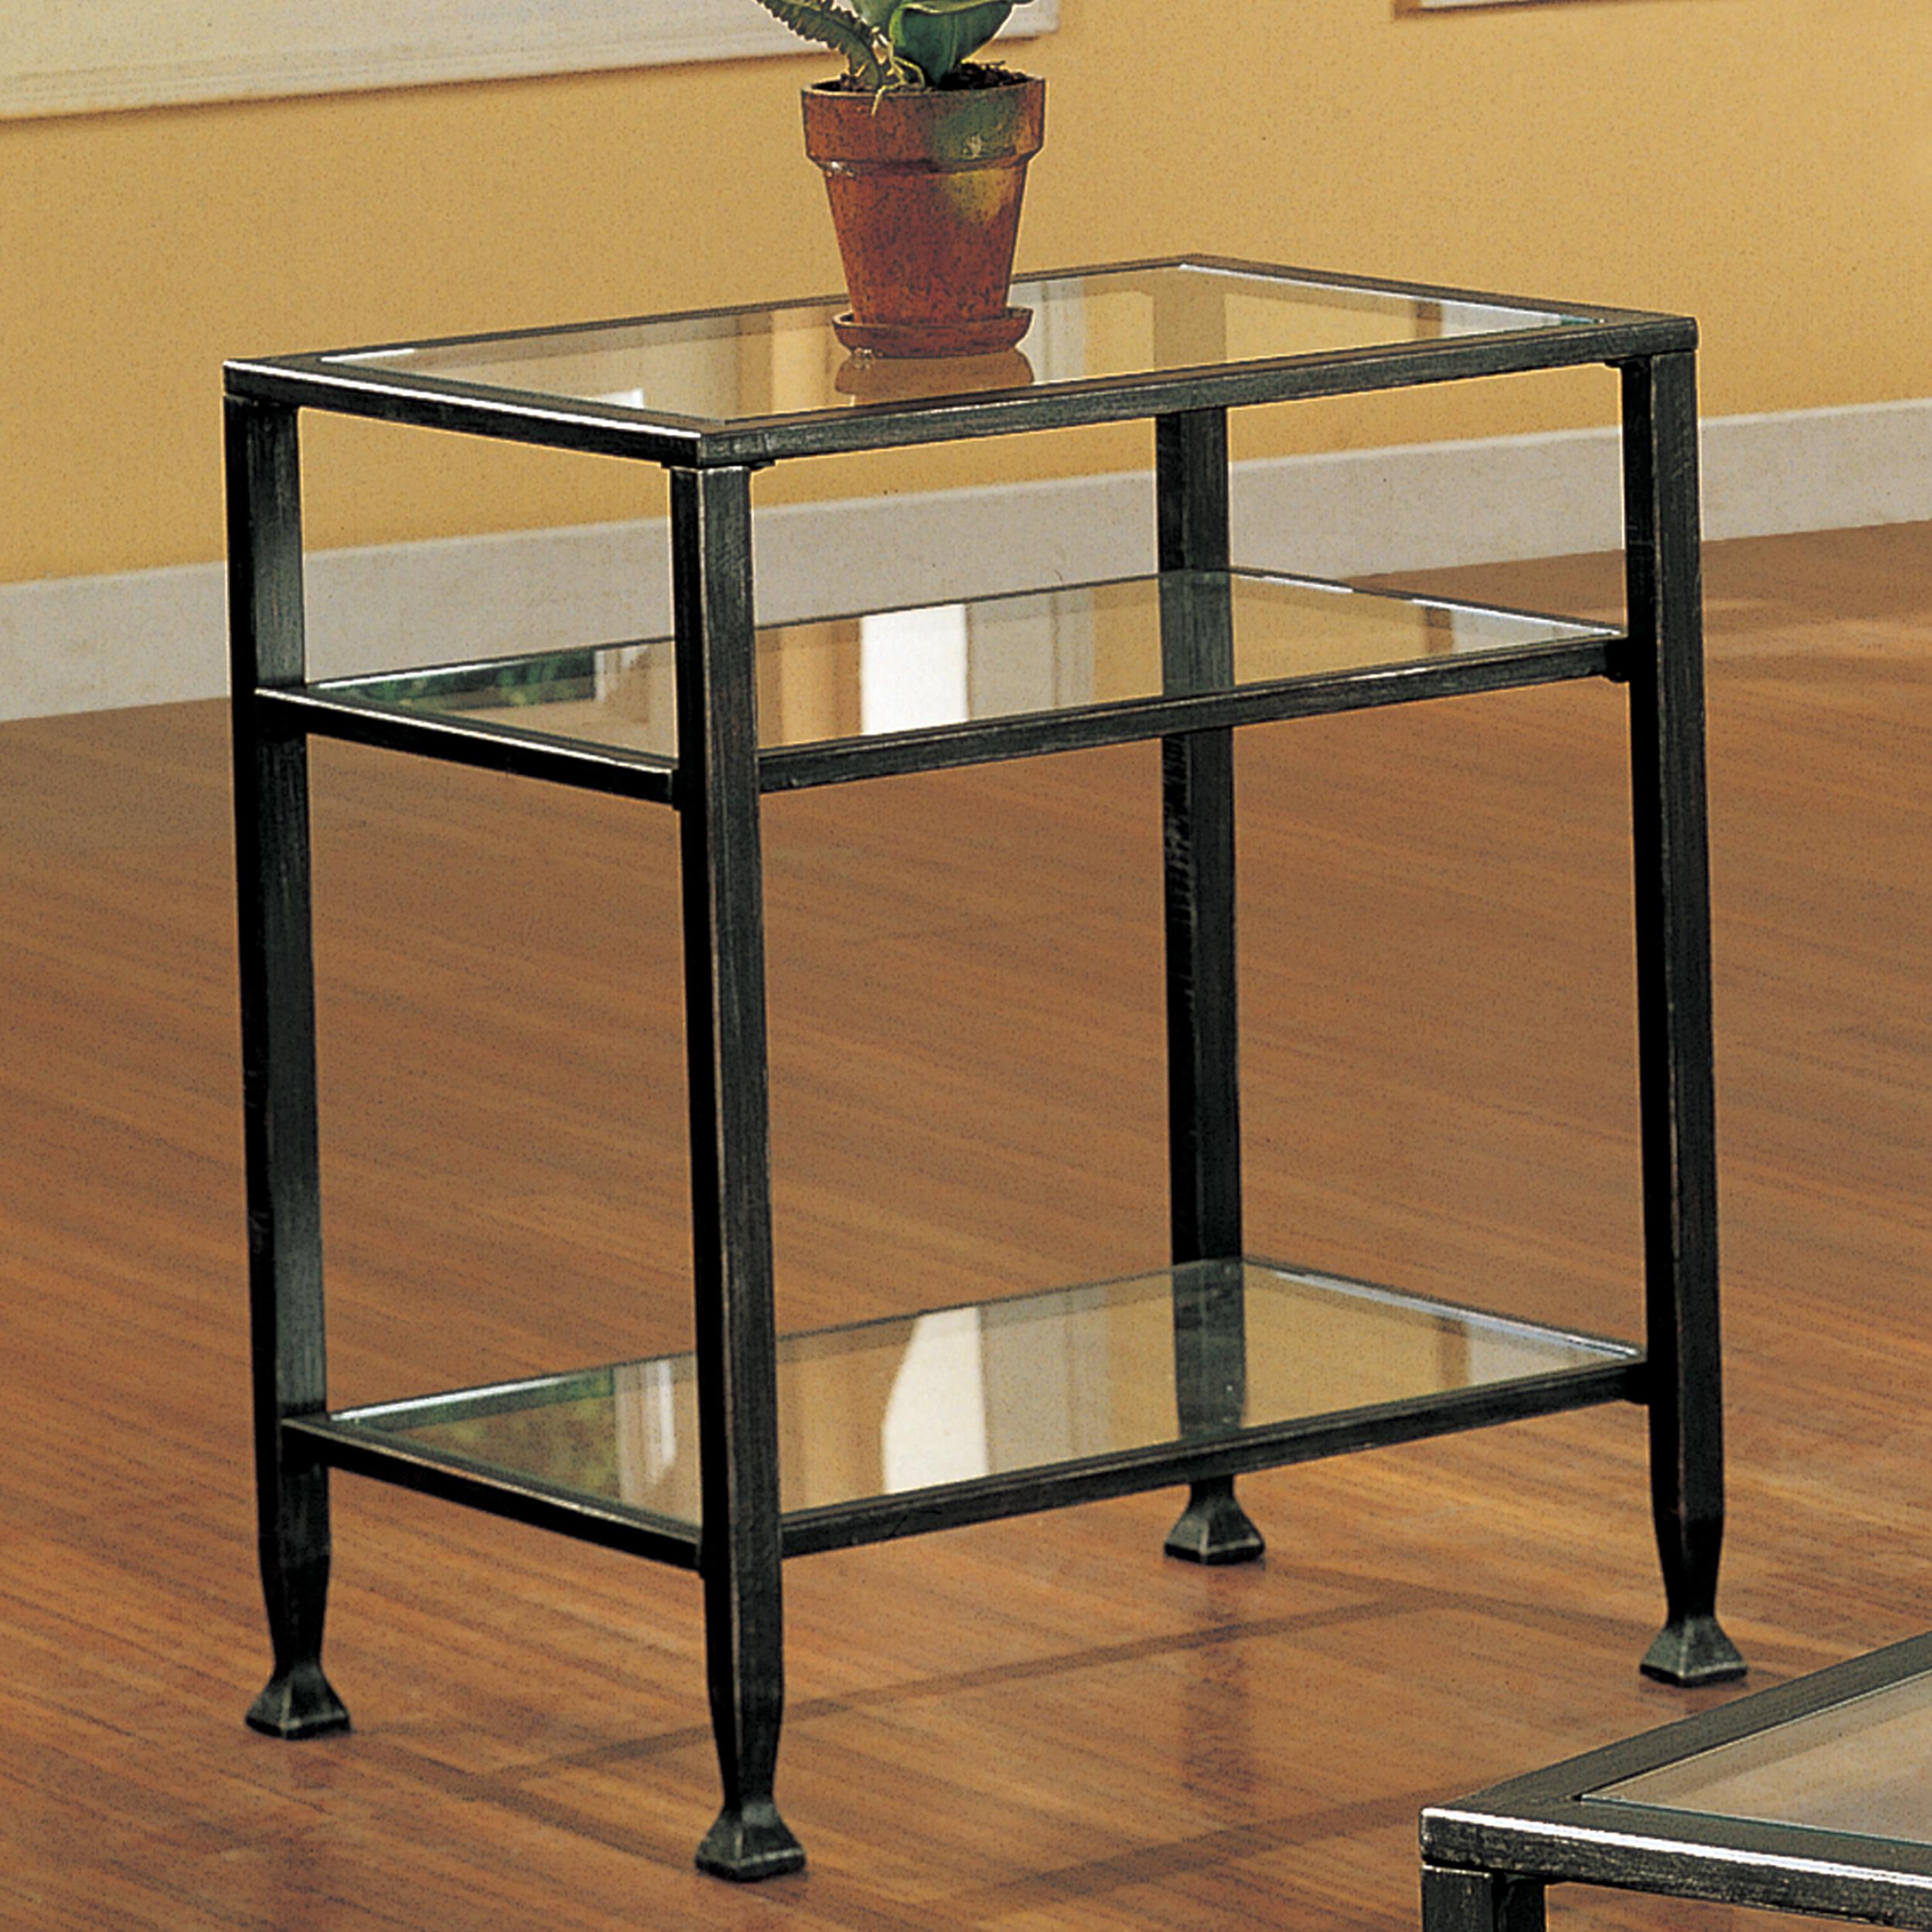 sei bunching metal end table glass side black iron and tables diy legs ethan allen bar cabinet simple plans top cocktail wrought wood ikea hemnes skinny living room lighting